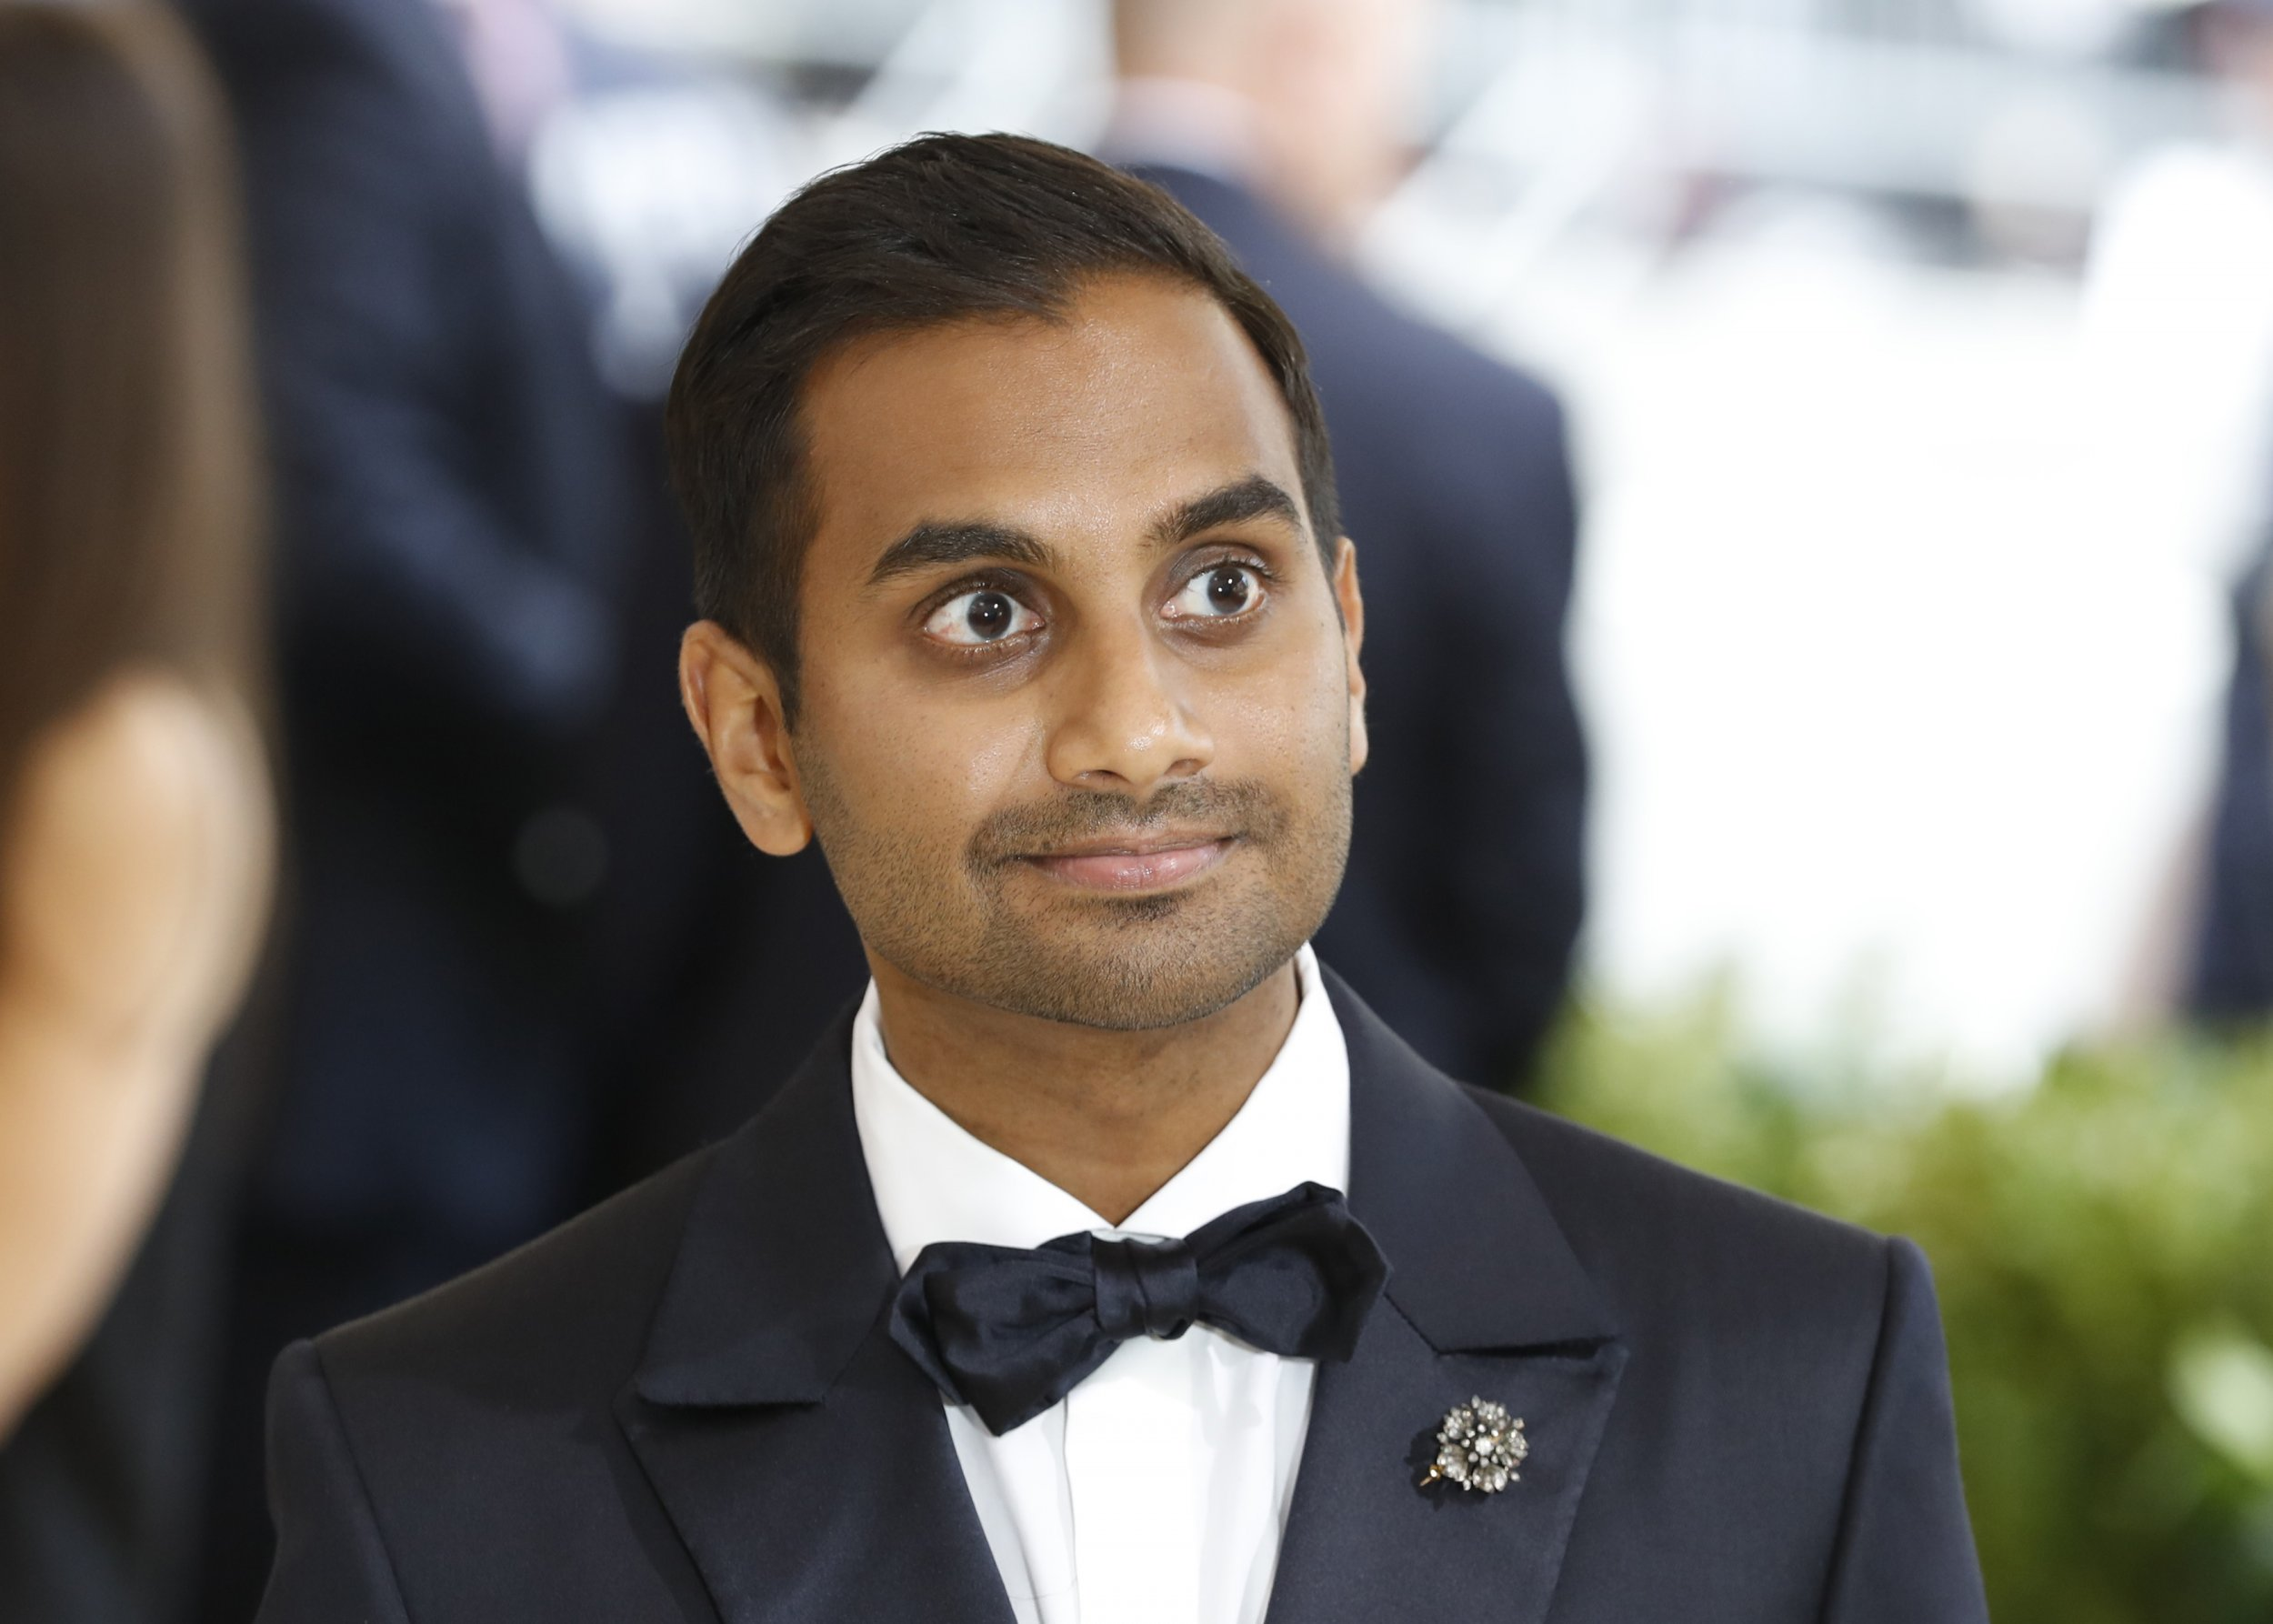 Aziz Ansari Love Online Dating Modern Romance and the